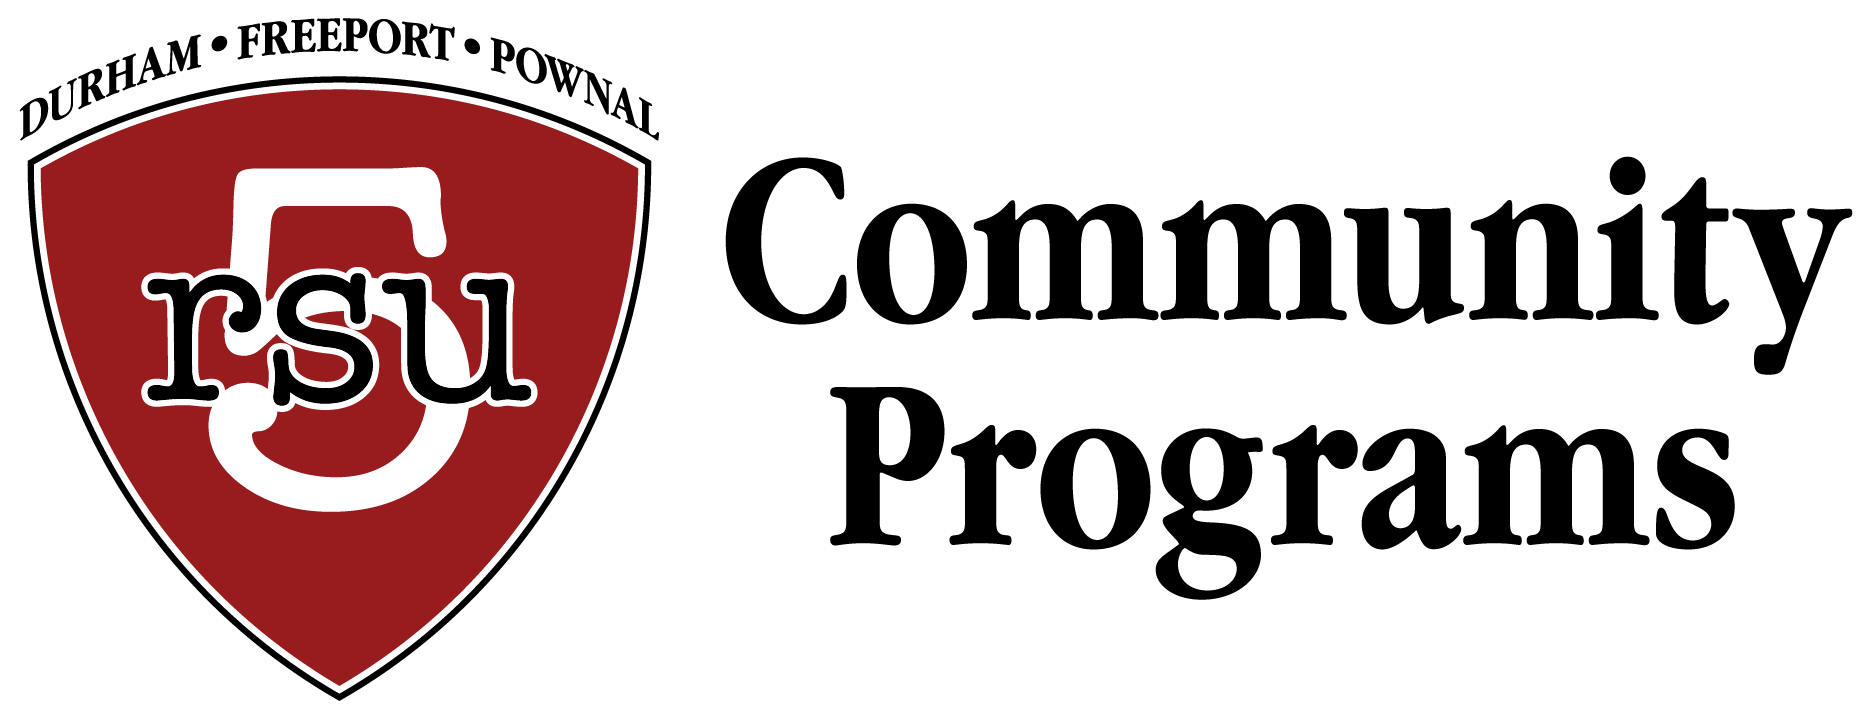 RSU5 Community Programs logo